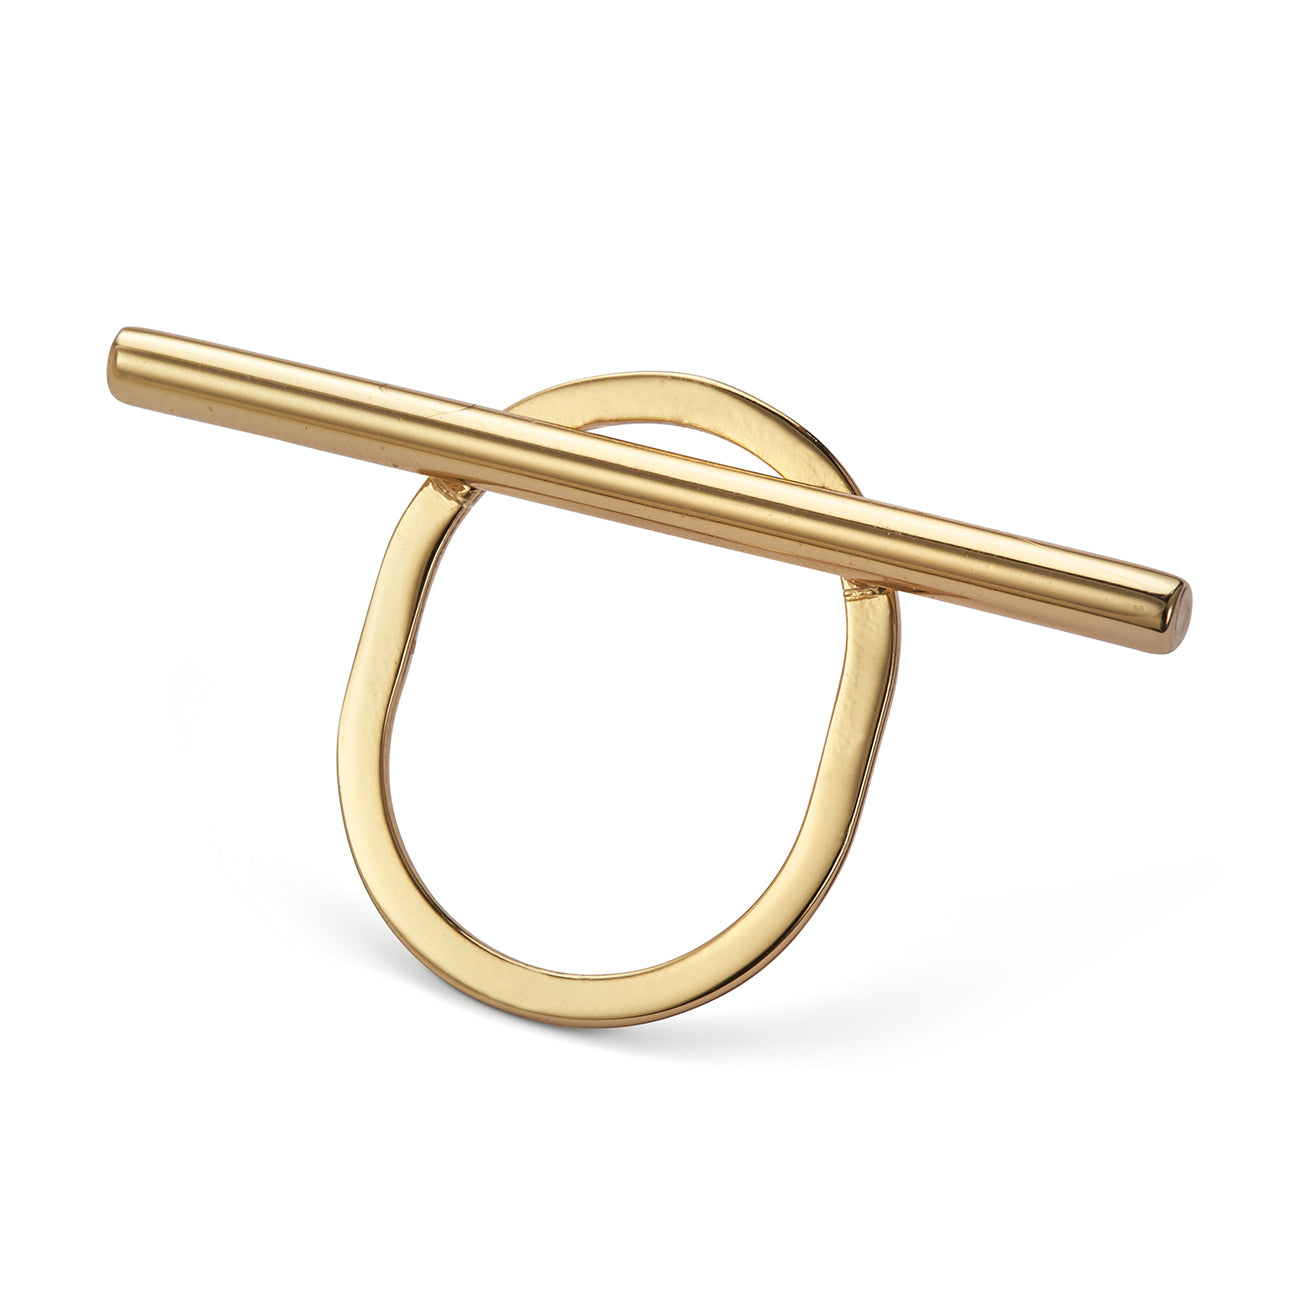 Trust Ring by Jenny Bird in Gold